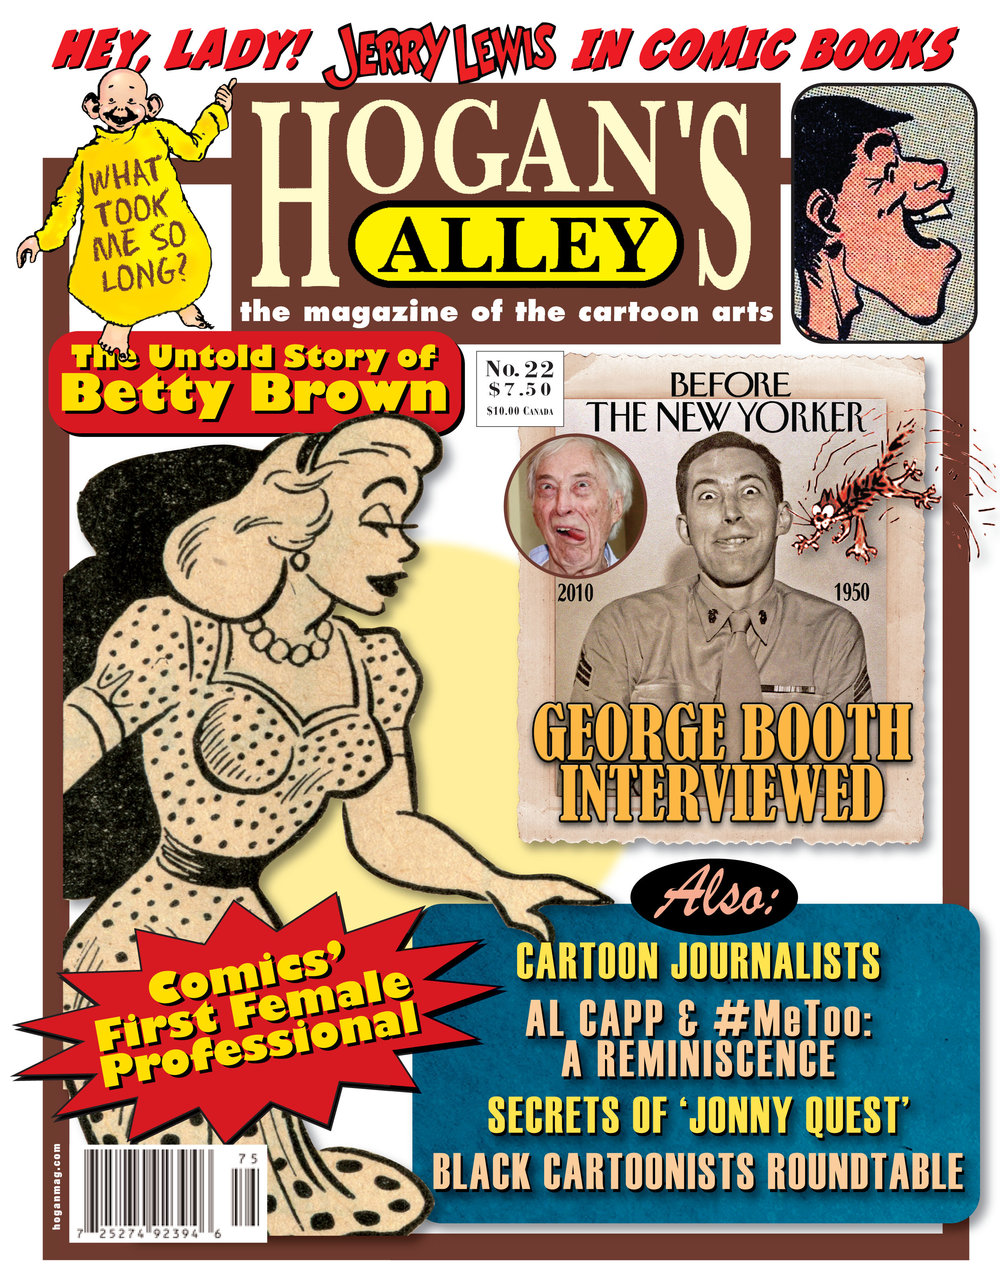 This article originally appeared in  Hogan's Alley  #22 (cover above). To order a printed copy of the issue, click the image and visit our online store.